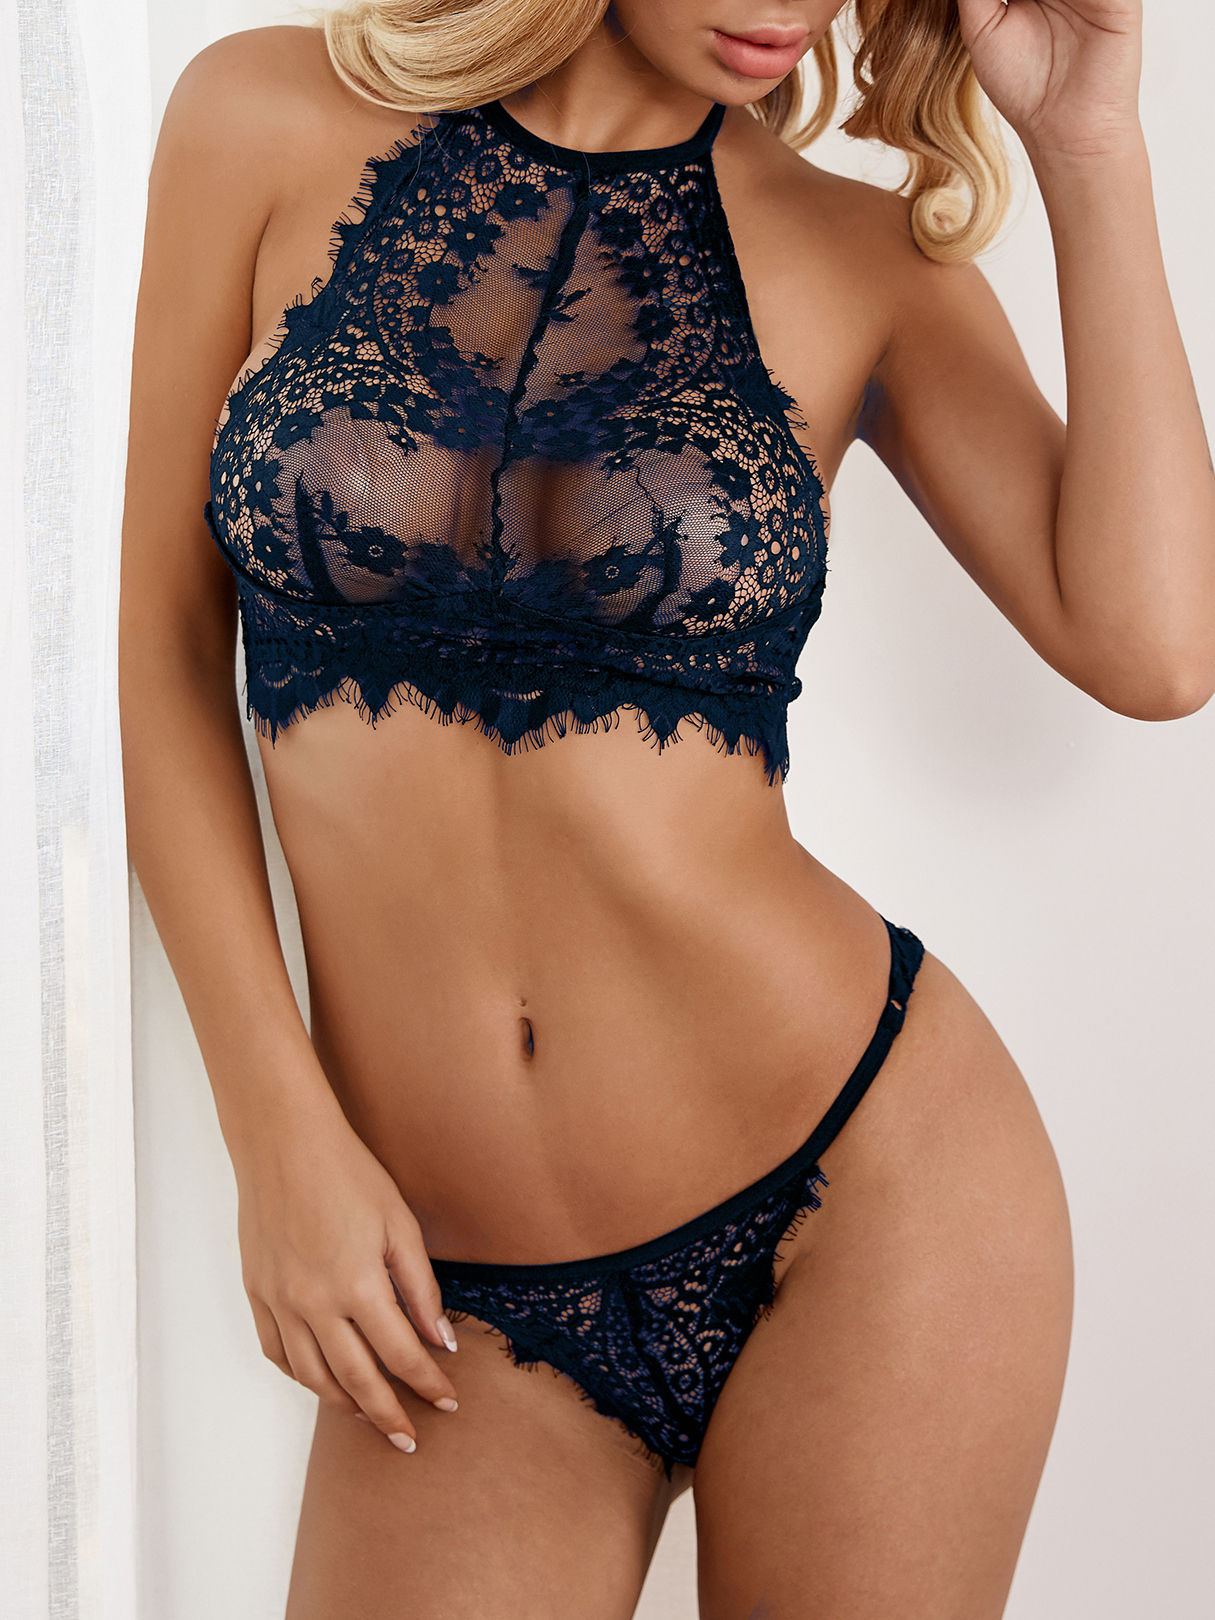 Dark Blue Sexy Delicate See-through Eyelash Trim Halter Lingerie Set without Stockings